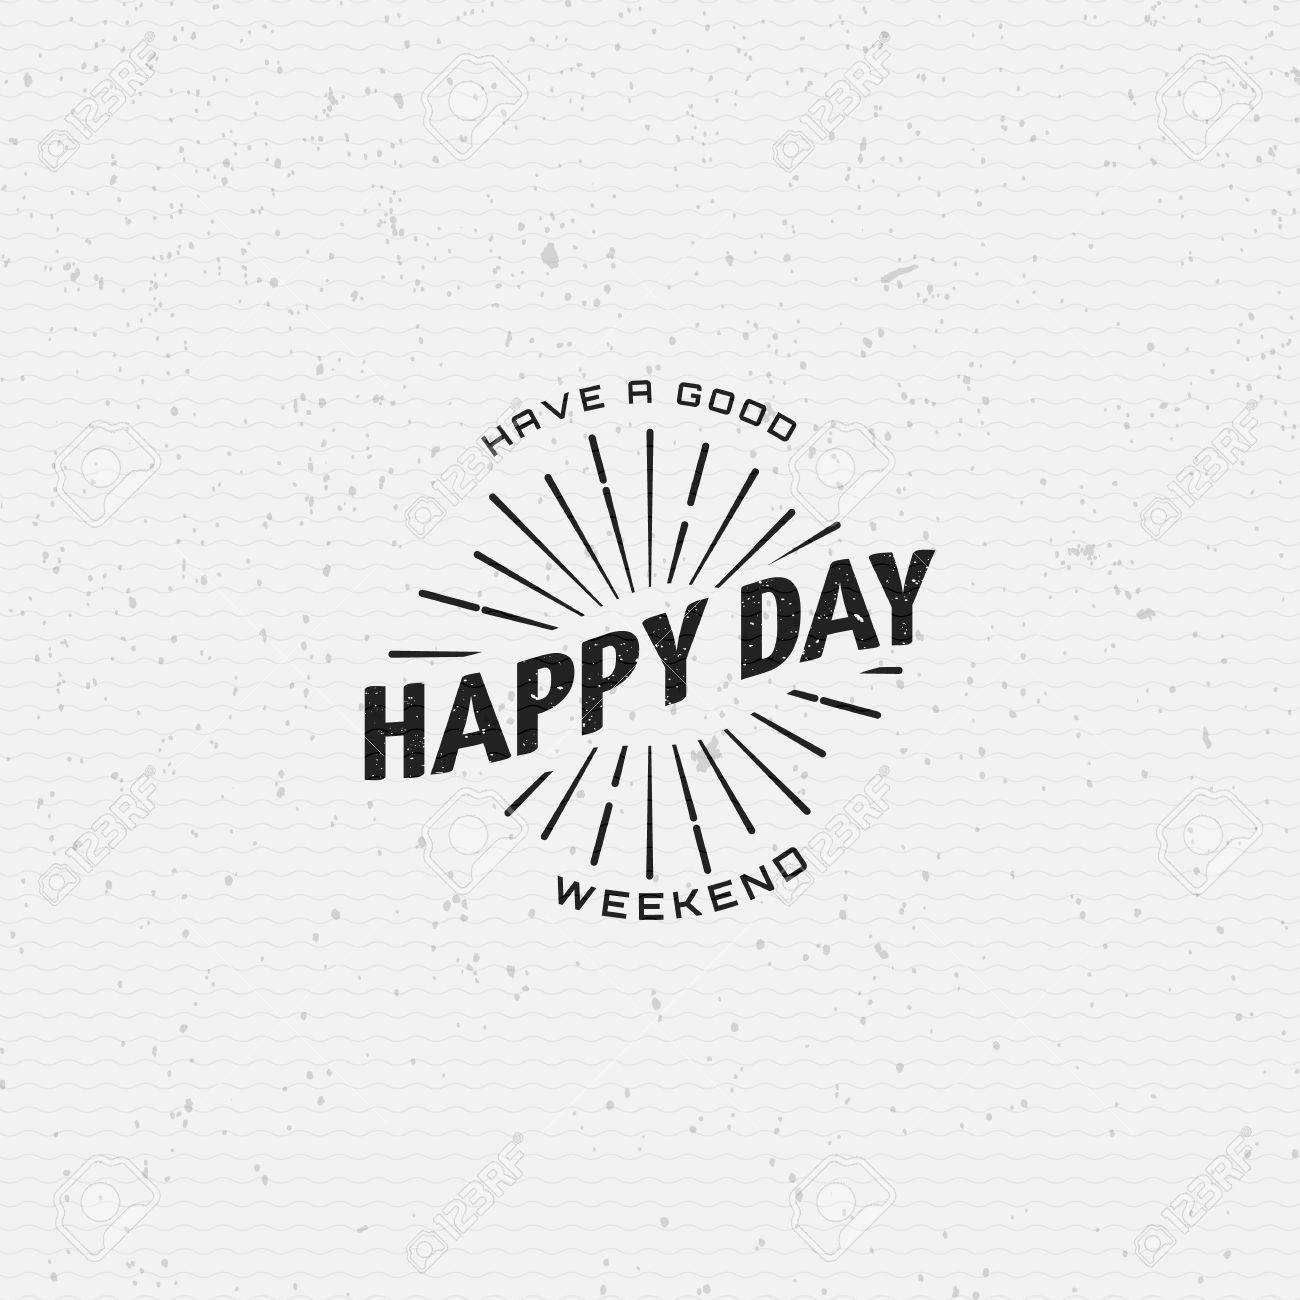 Have A Good Weekend Happy Day Eps10 Royalty Free Cliparts Vectors